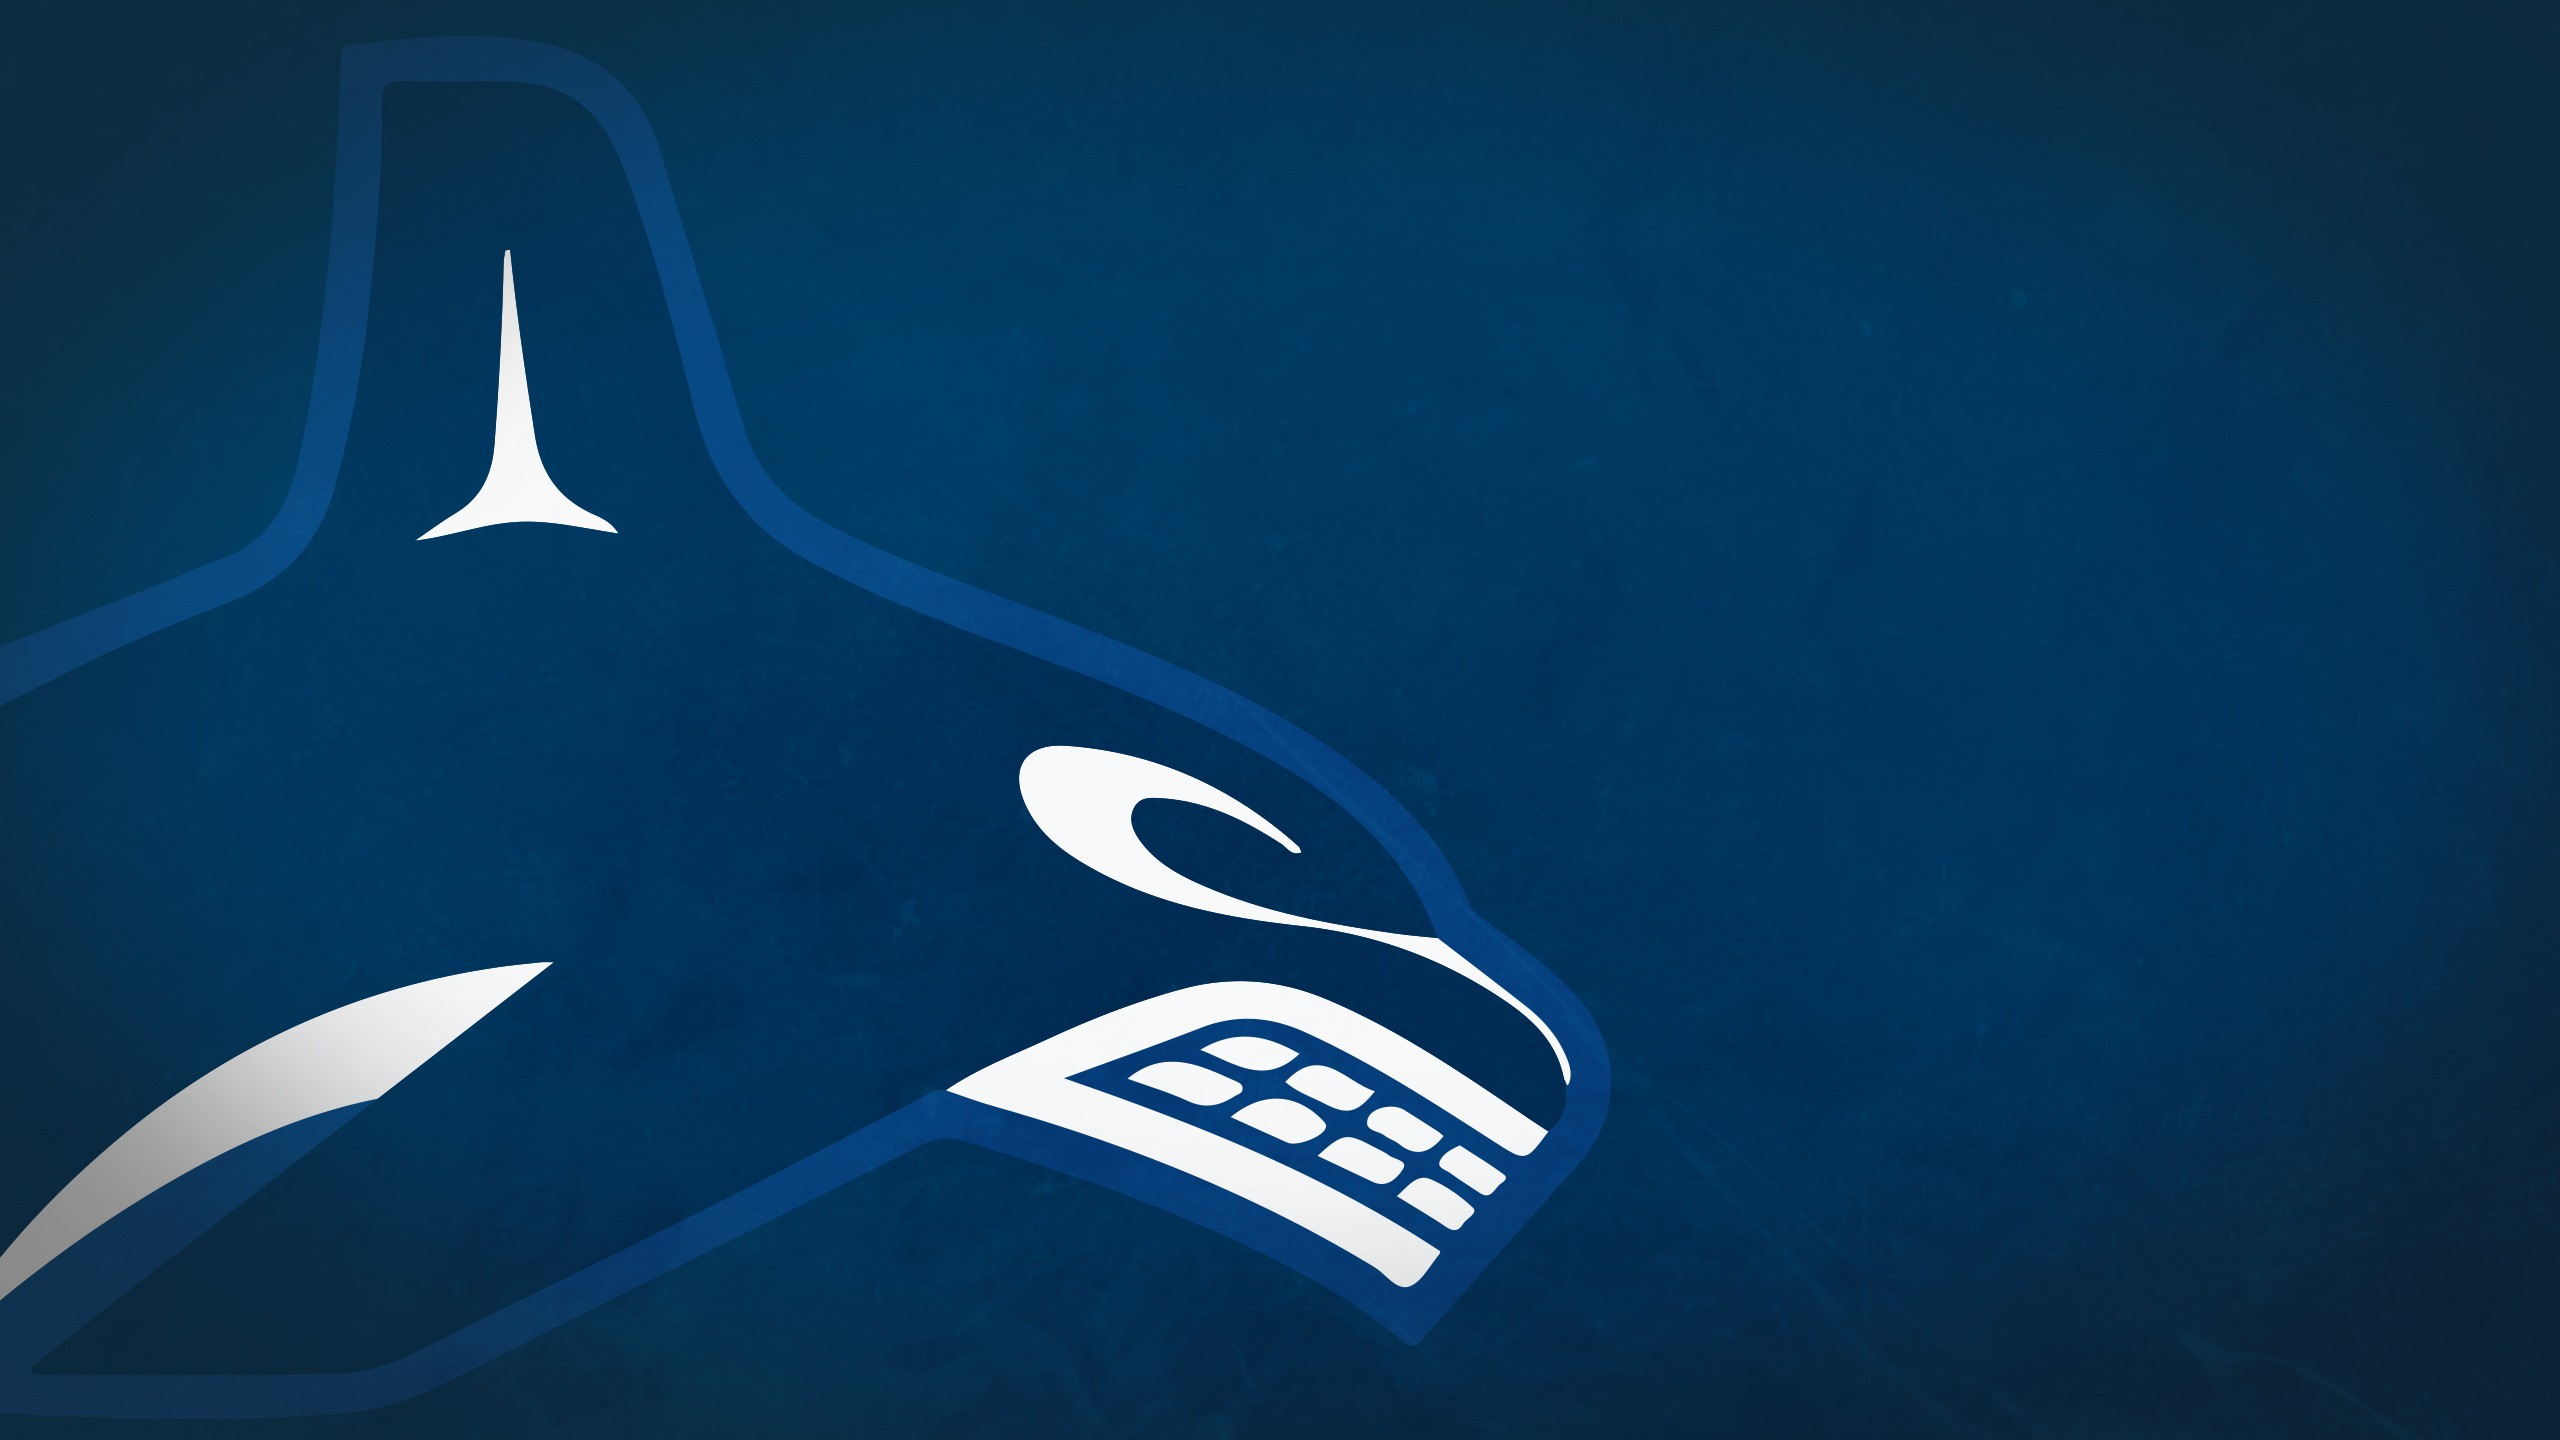 Vancouver Canucks Computer Wallpapers Desktop Backgrounds 2560x1440 2560x1440